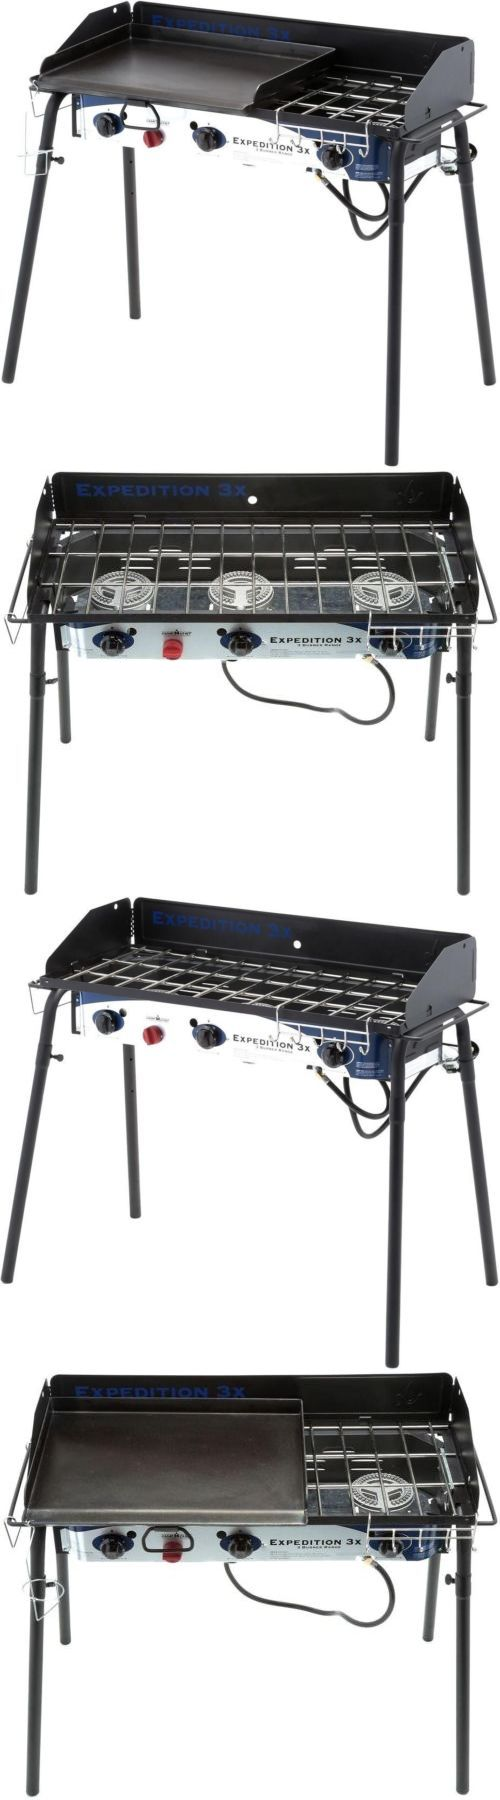 Camping BBQs and Grills 181388: 3-Burner Propane Gas Grill Griddle Camp Tailgate Wind Shield Cooker Heat Stove -> BUY IT NOW ONLY: $281.58 on eBay!